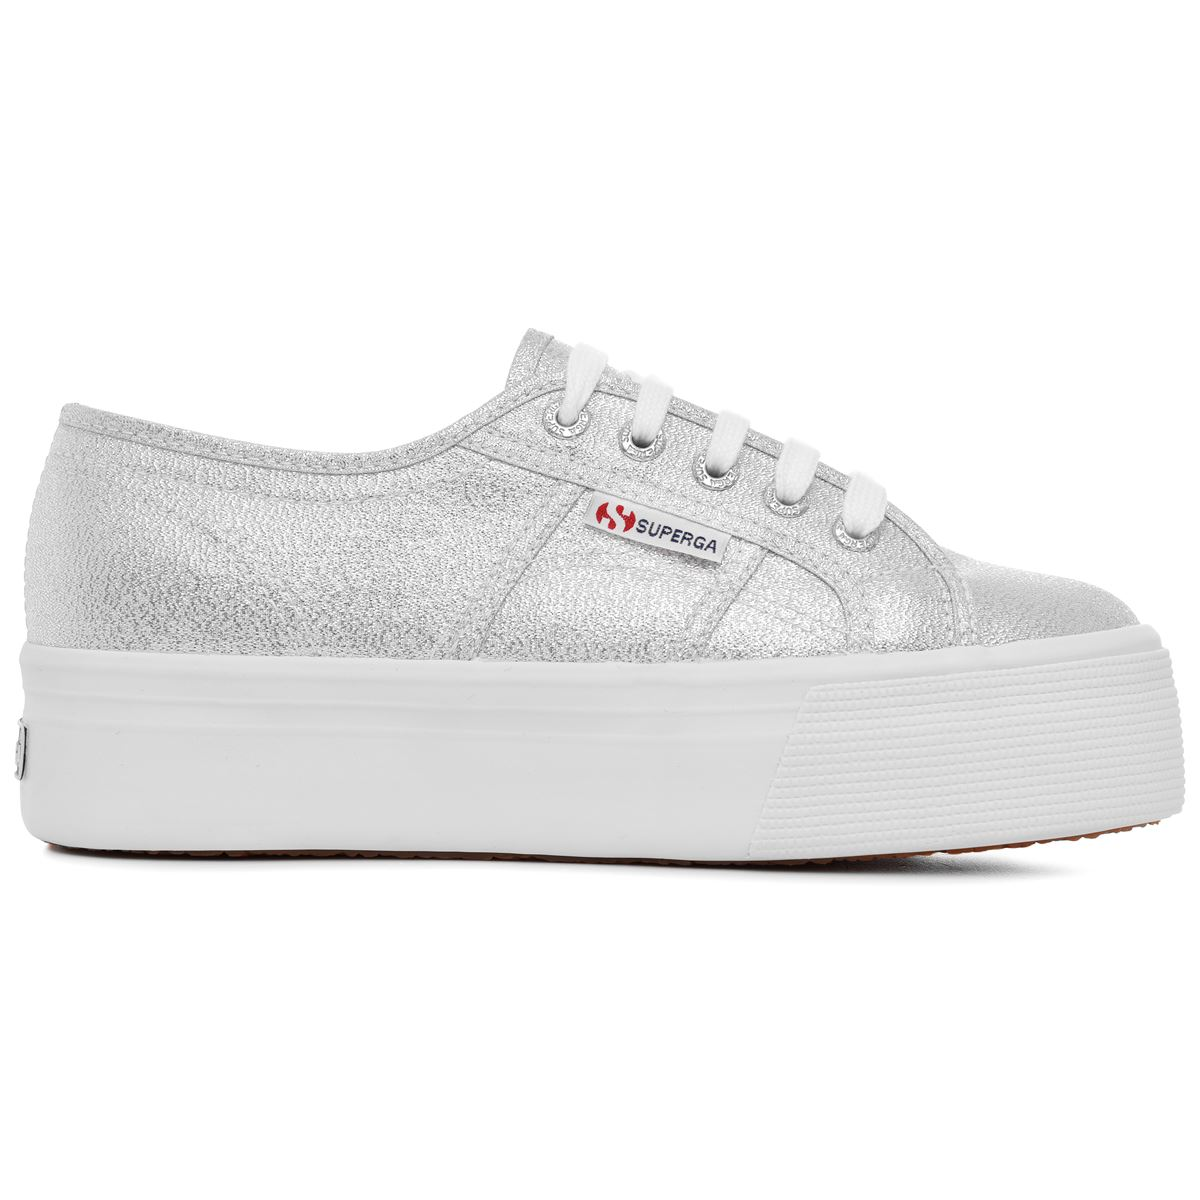 Superga Lady Shoes 2790-LAMEW Woman CHIC Wedge